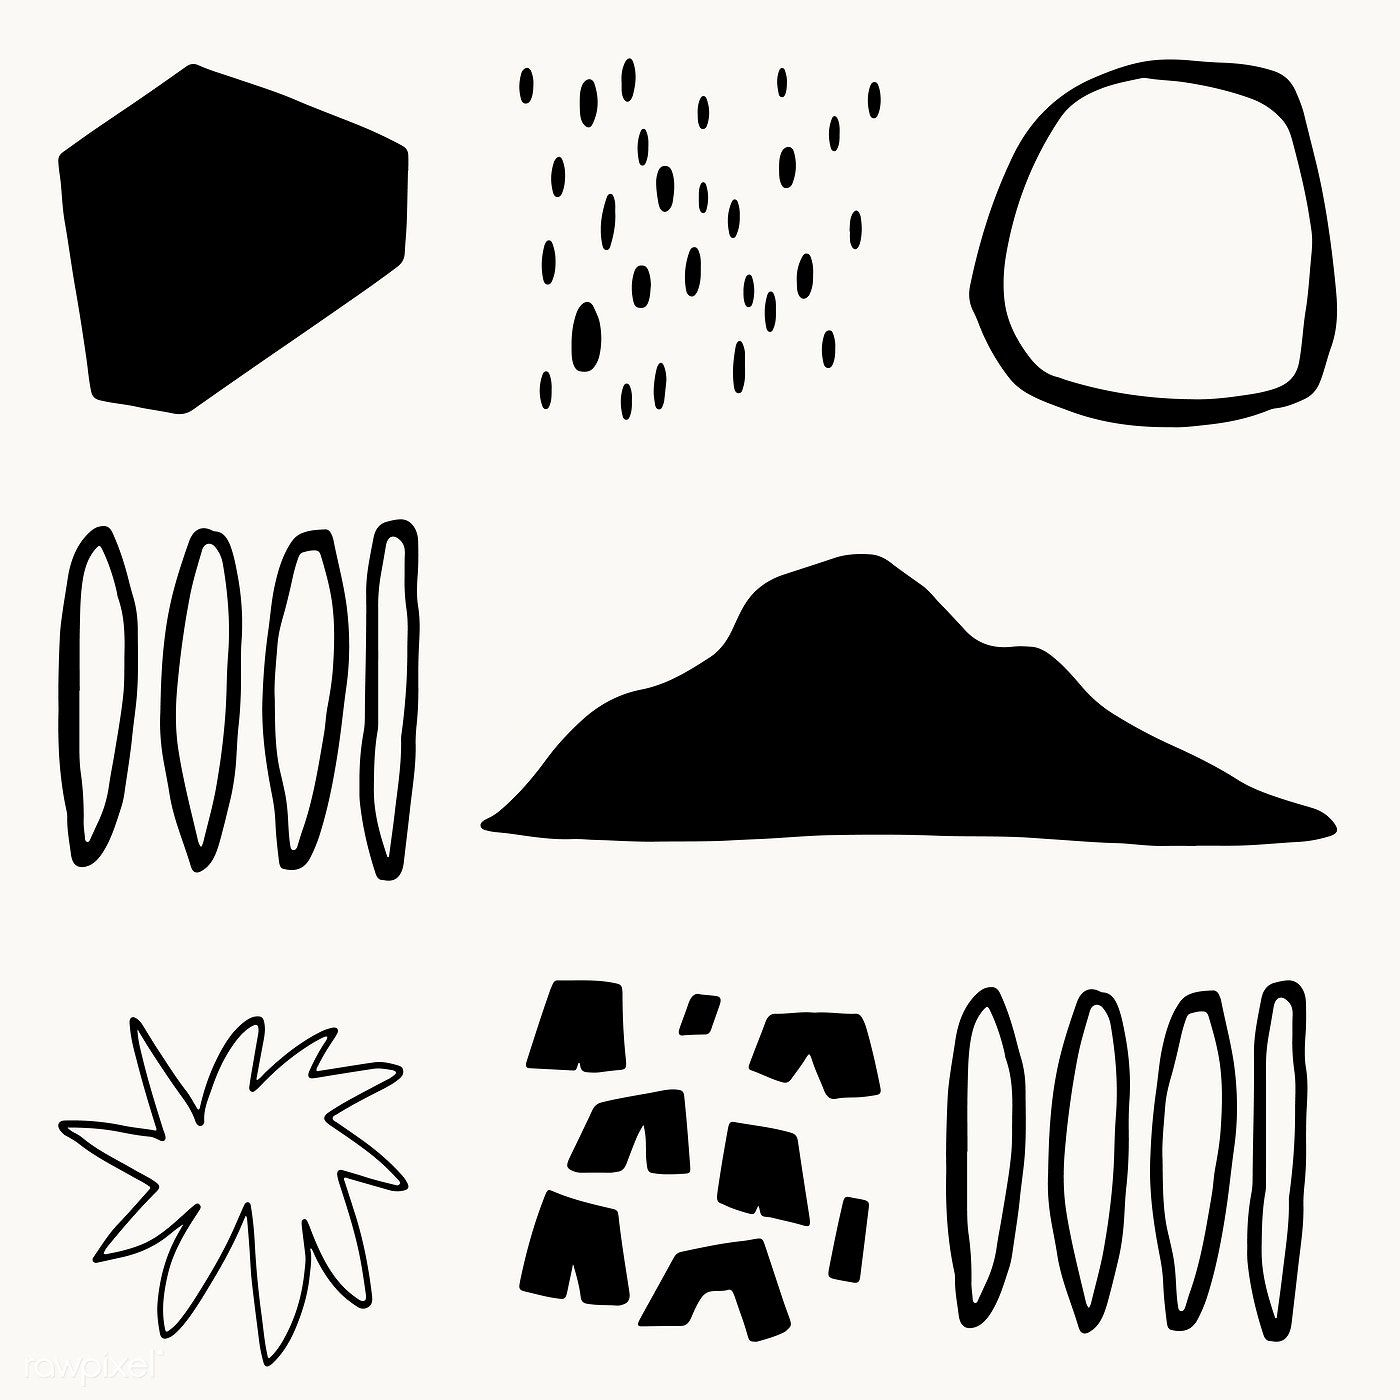 Download premium vector of Black and white design elements